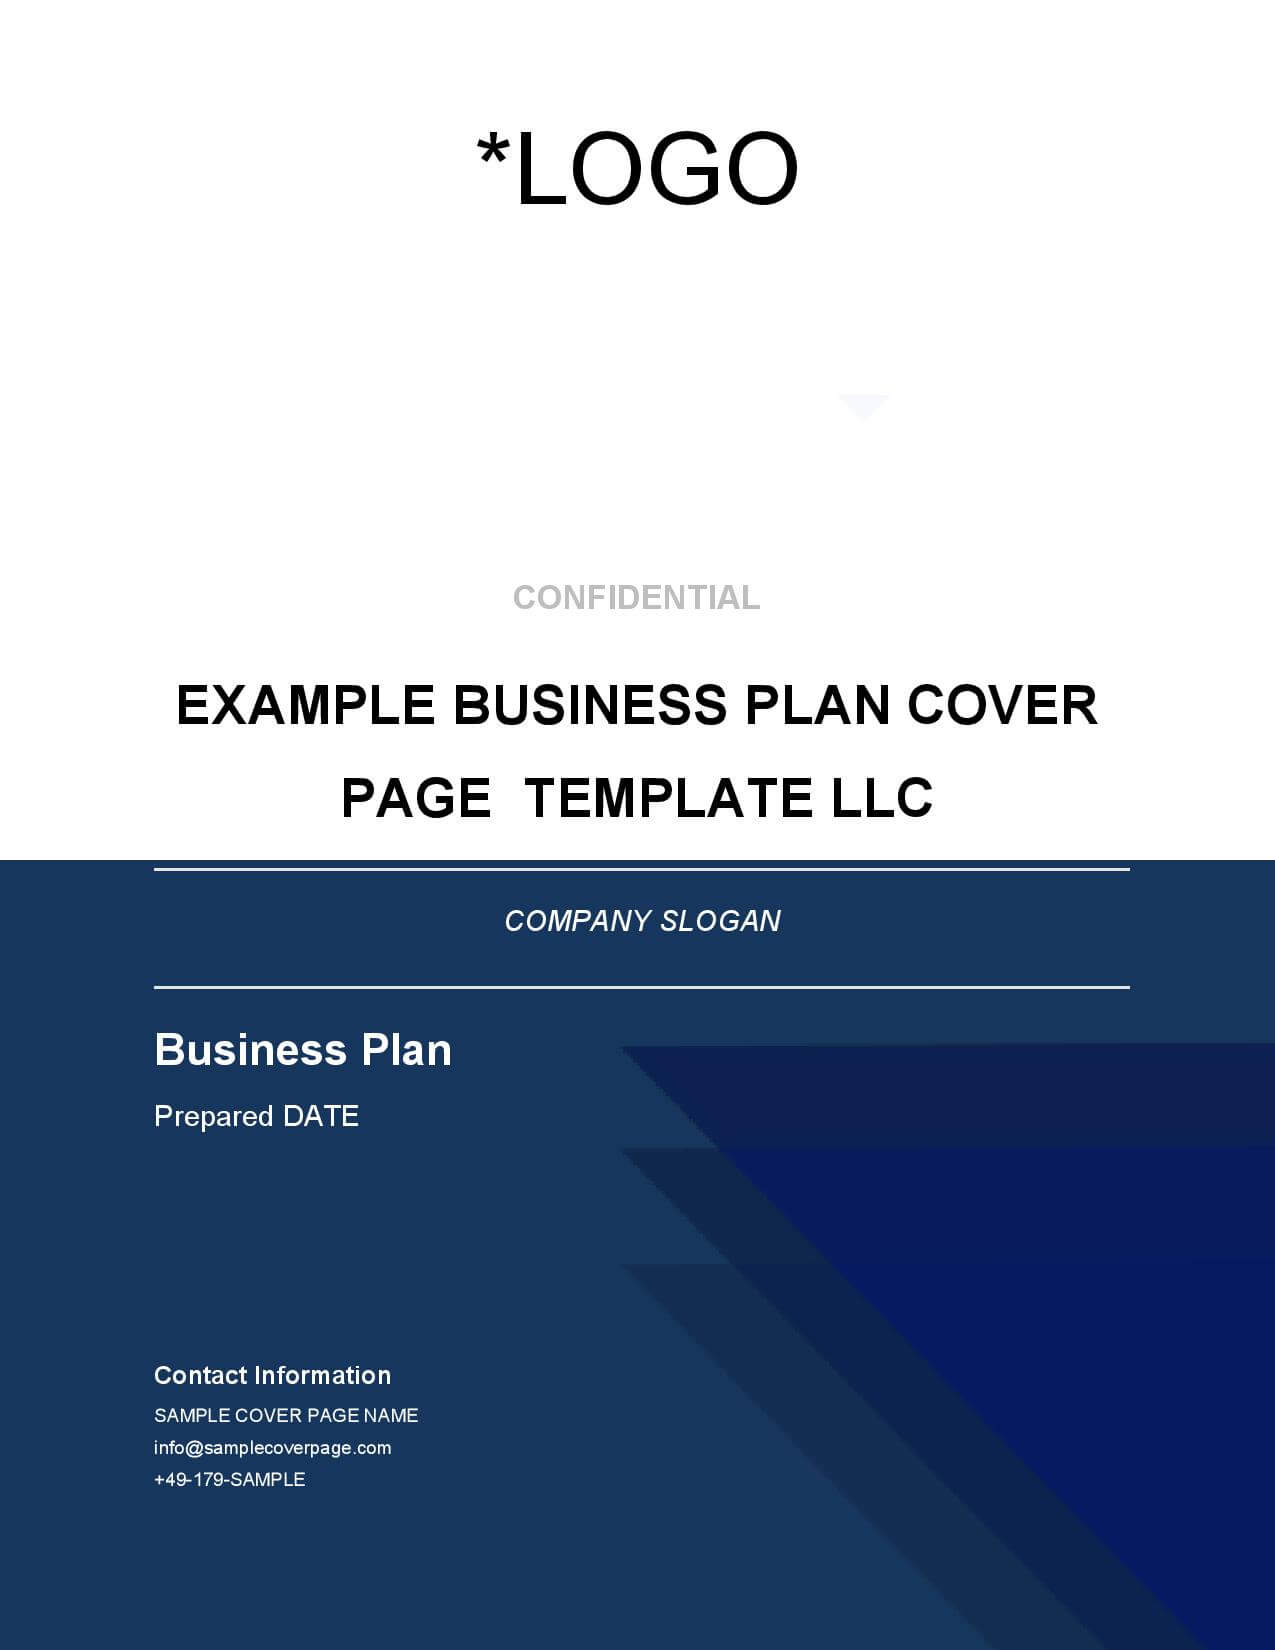 Businessplan Cover Page Template En 1 Page 001  Business Proposal Cover Sheet